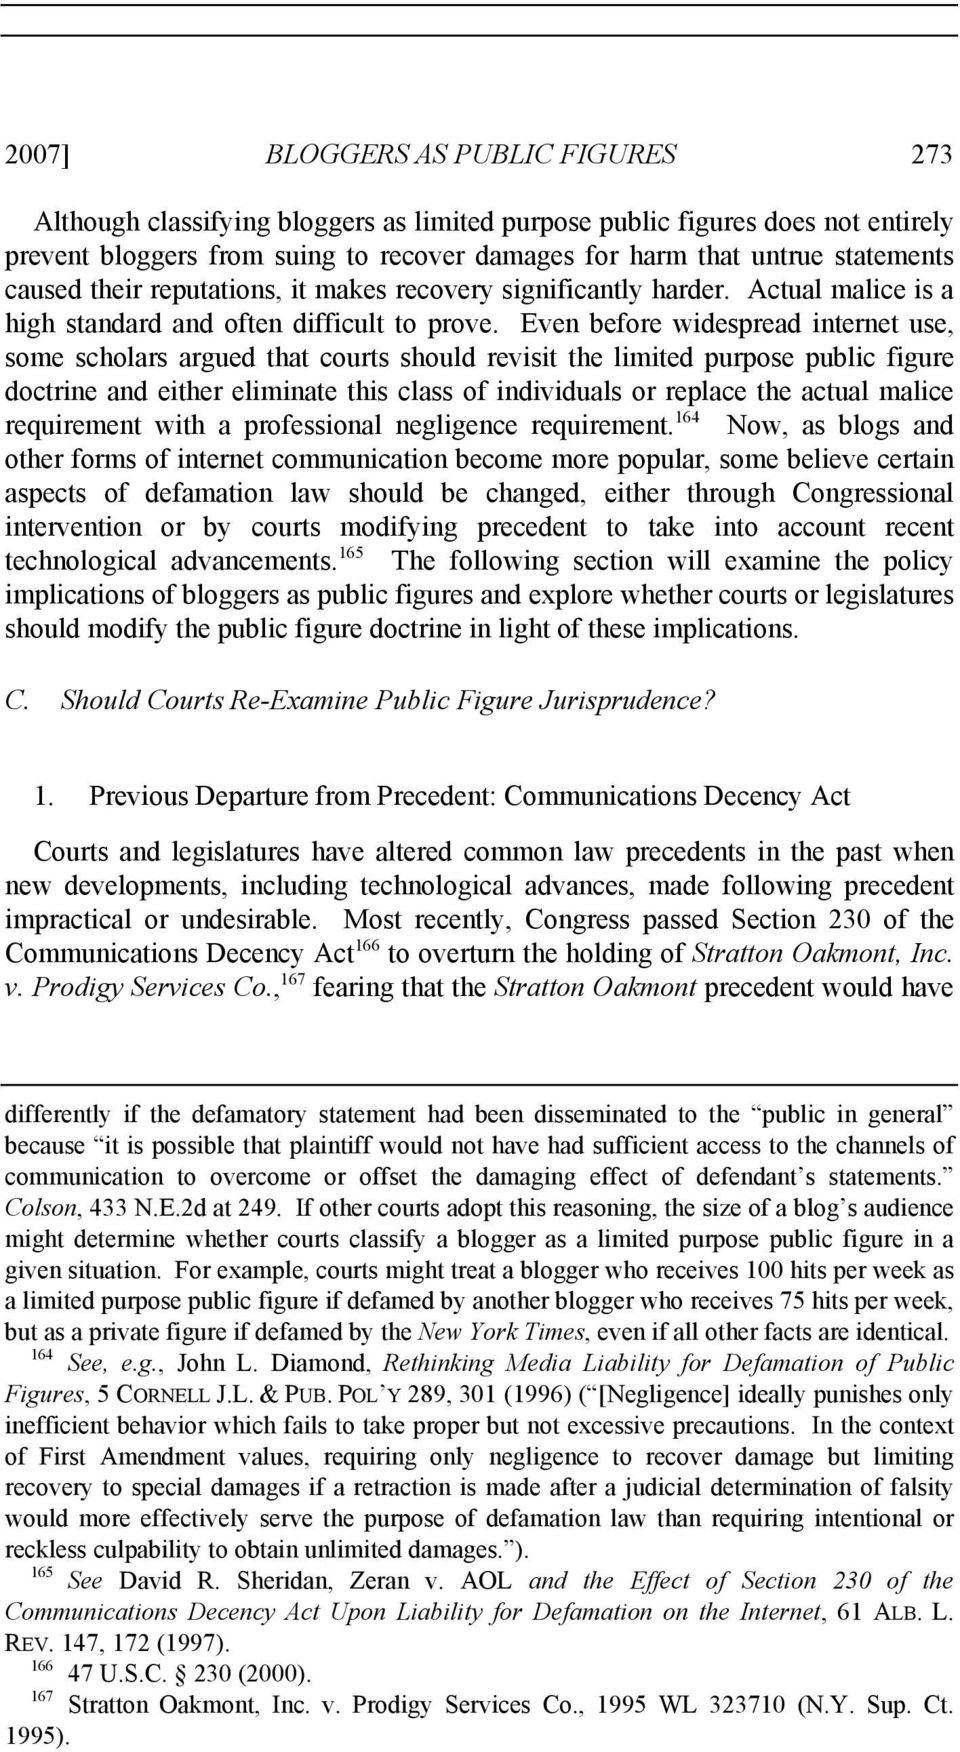 Even before widespread internet use, some scholars argued that courts should revisit the limited purpose public figure doctrine and either eliminate this class of individuals or replace the actual